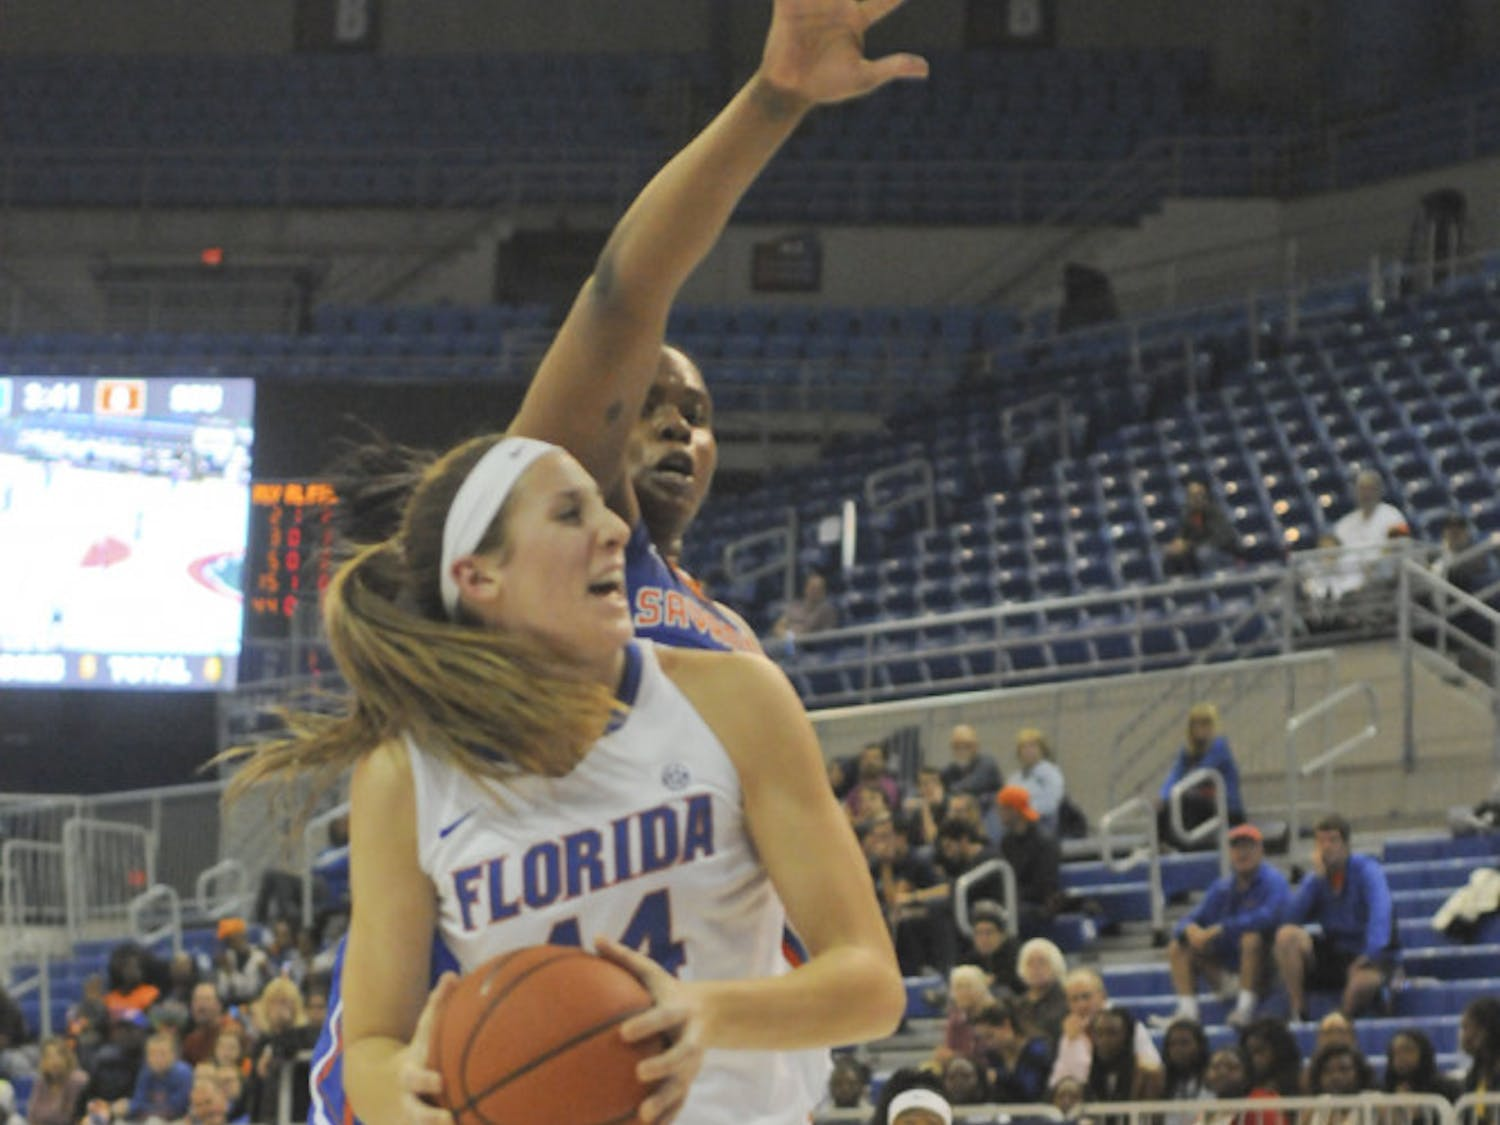 Haley Lorenzen battles for position in the paint during Florida's 99-34 win against Savannah State on Nov. 24, 2015, in the O'Connell Center.